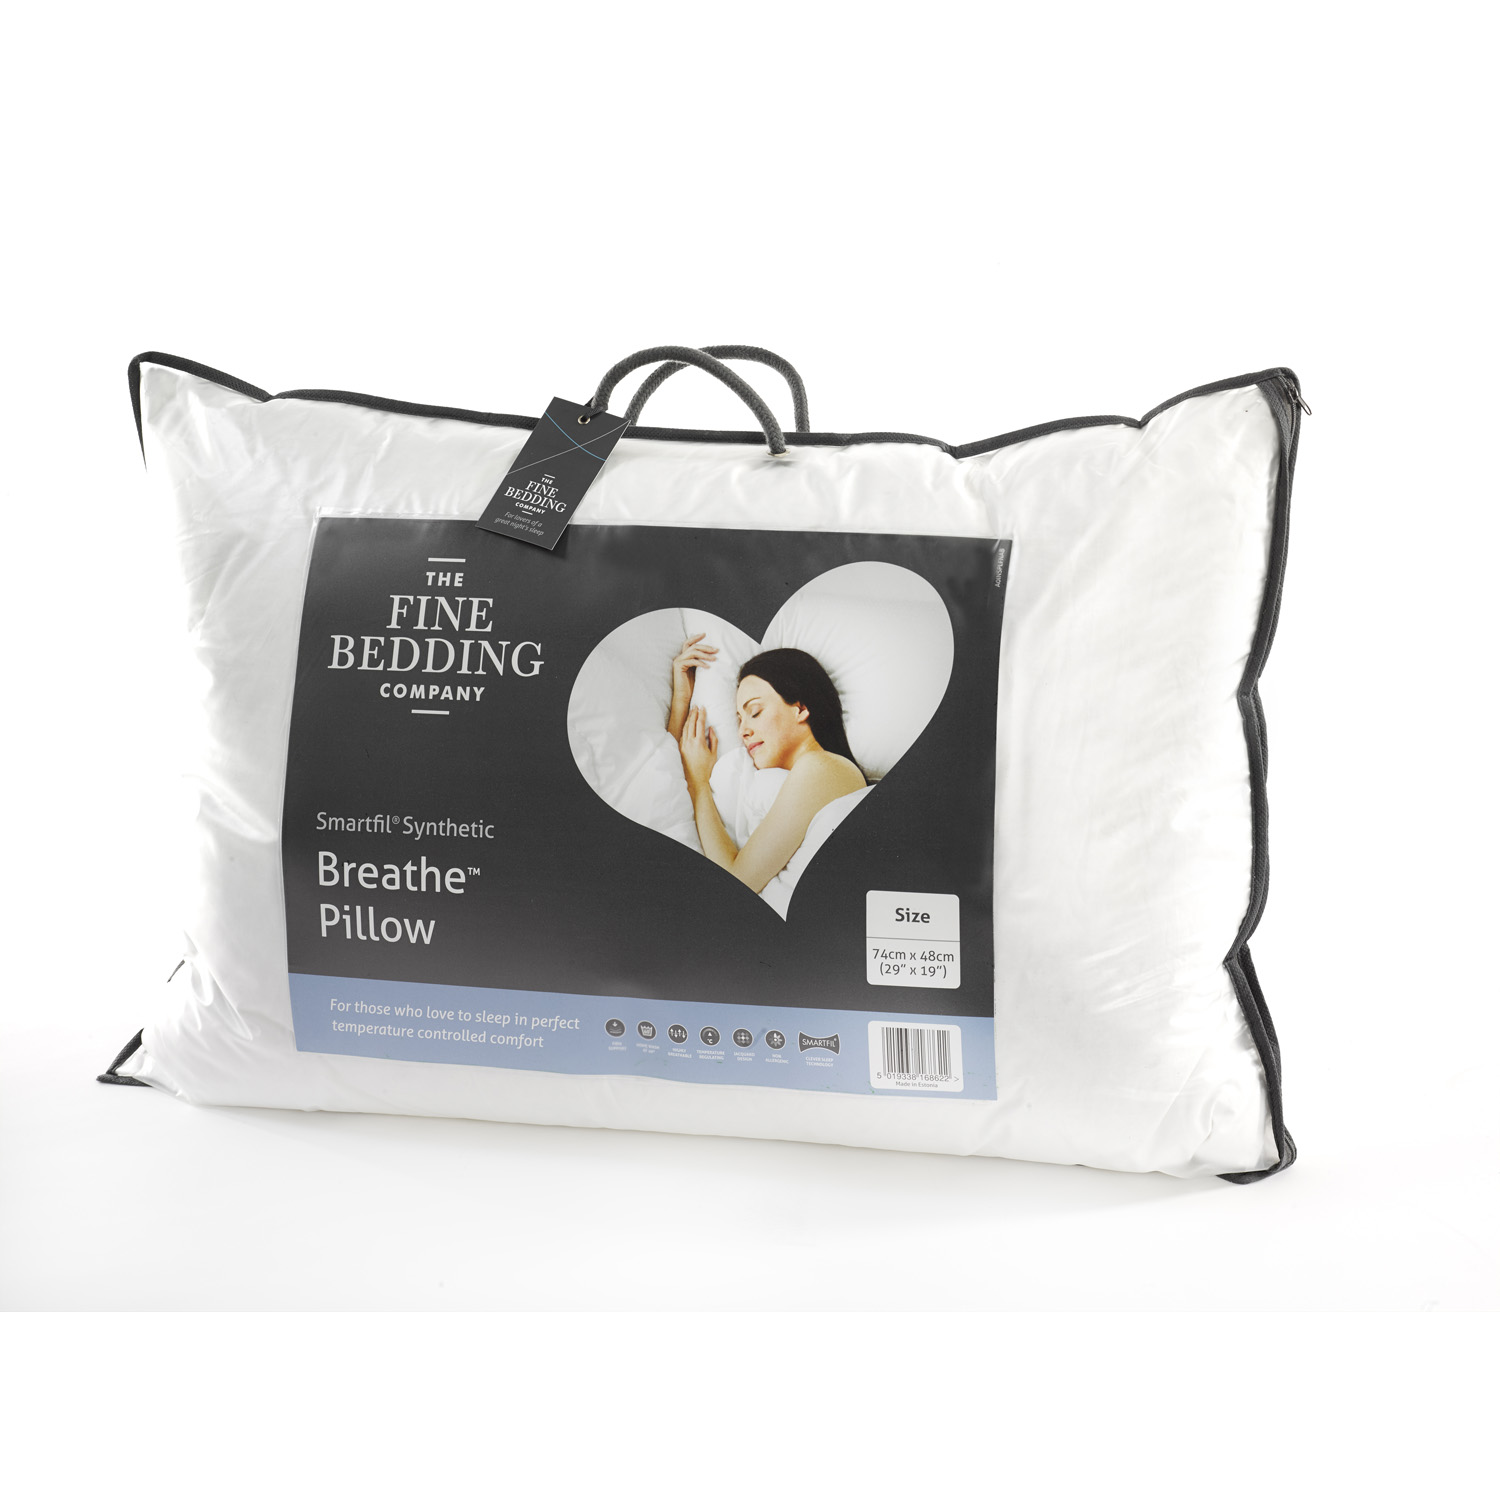 Image of Fine Bedding Company Breathe Pillow, 50cmx70cm